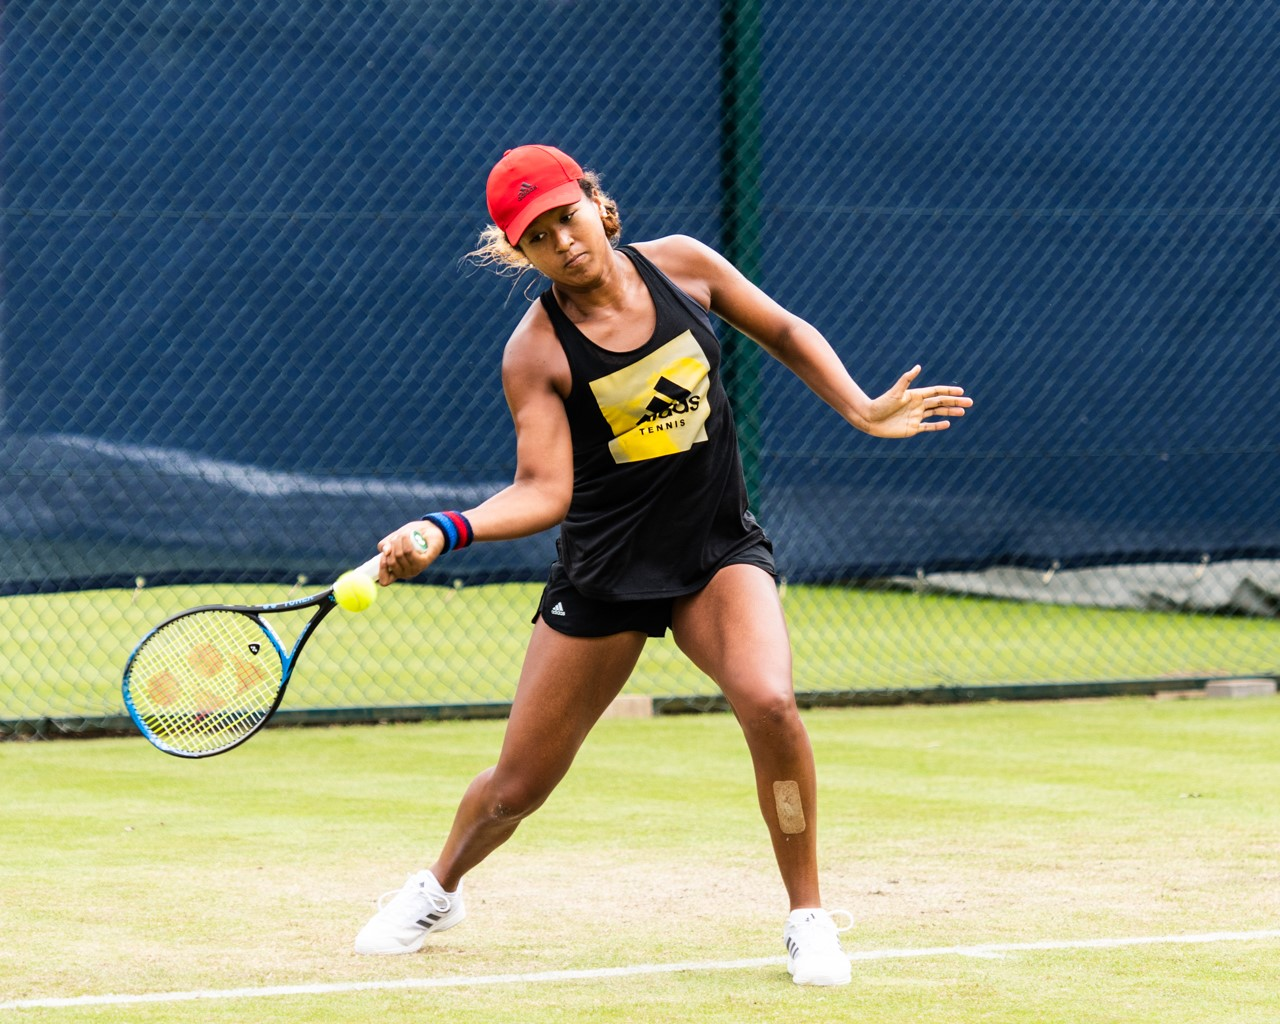 Tennis star Naomi Osaka, wearing a red hat, black tank top, and black shorts, hits a tennis ball with a forehand swing.